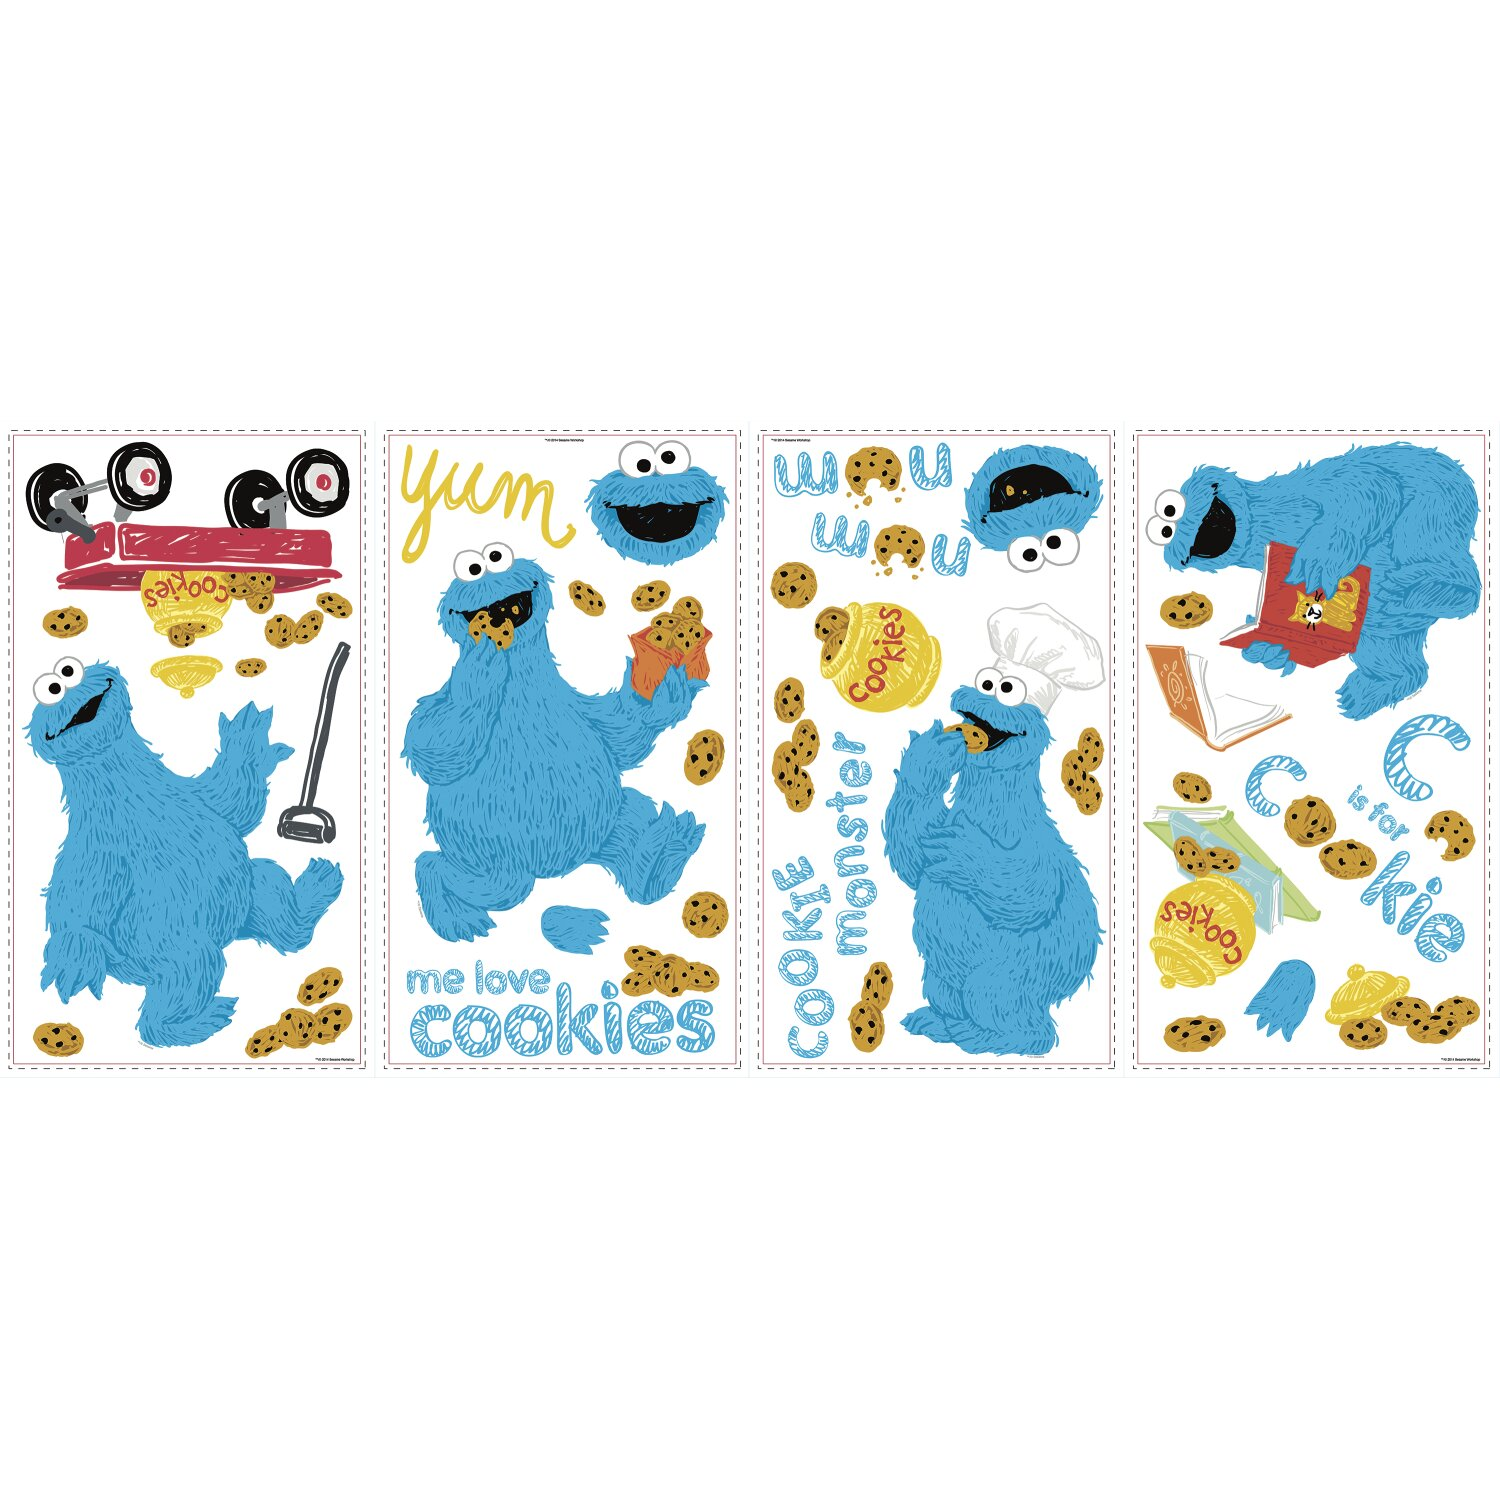 Rustic Dining Room Tables For Sale Room Mates Popular Characters Sesame Street Me Love Cookie